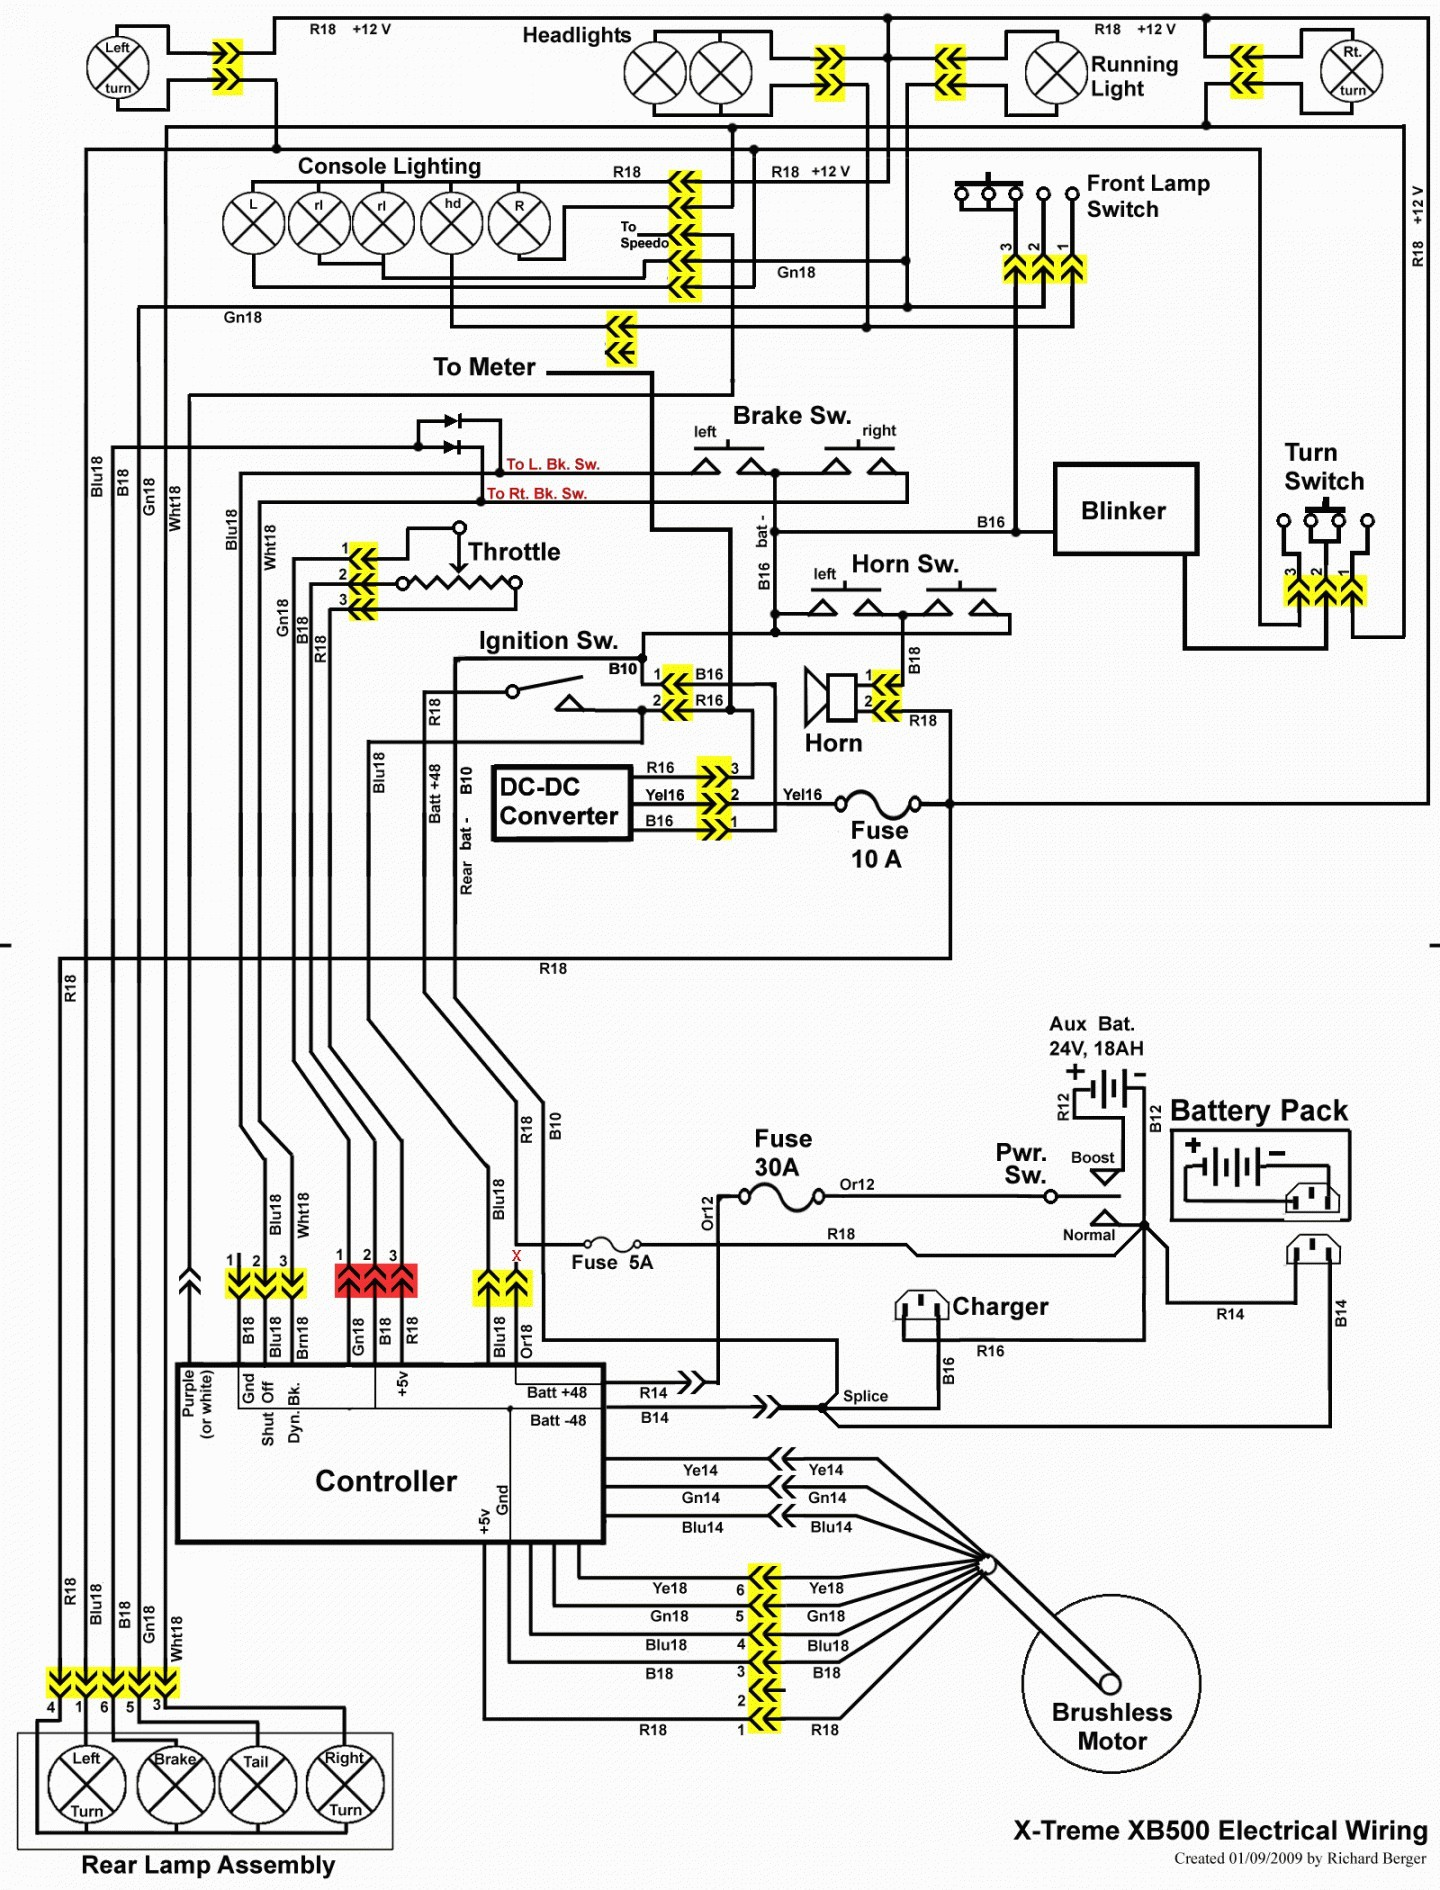 tao tao 50 scooter cdi wiring diagram wiring diagrams site50cc scooter wiring diagrams carbonvote mudit blog \\u2022 tao tao 110 atv wiring diagram tao tao 50 scooter cdi wiring diagram